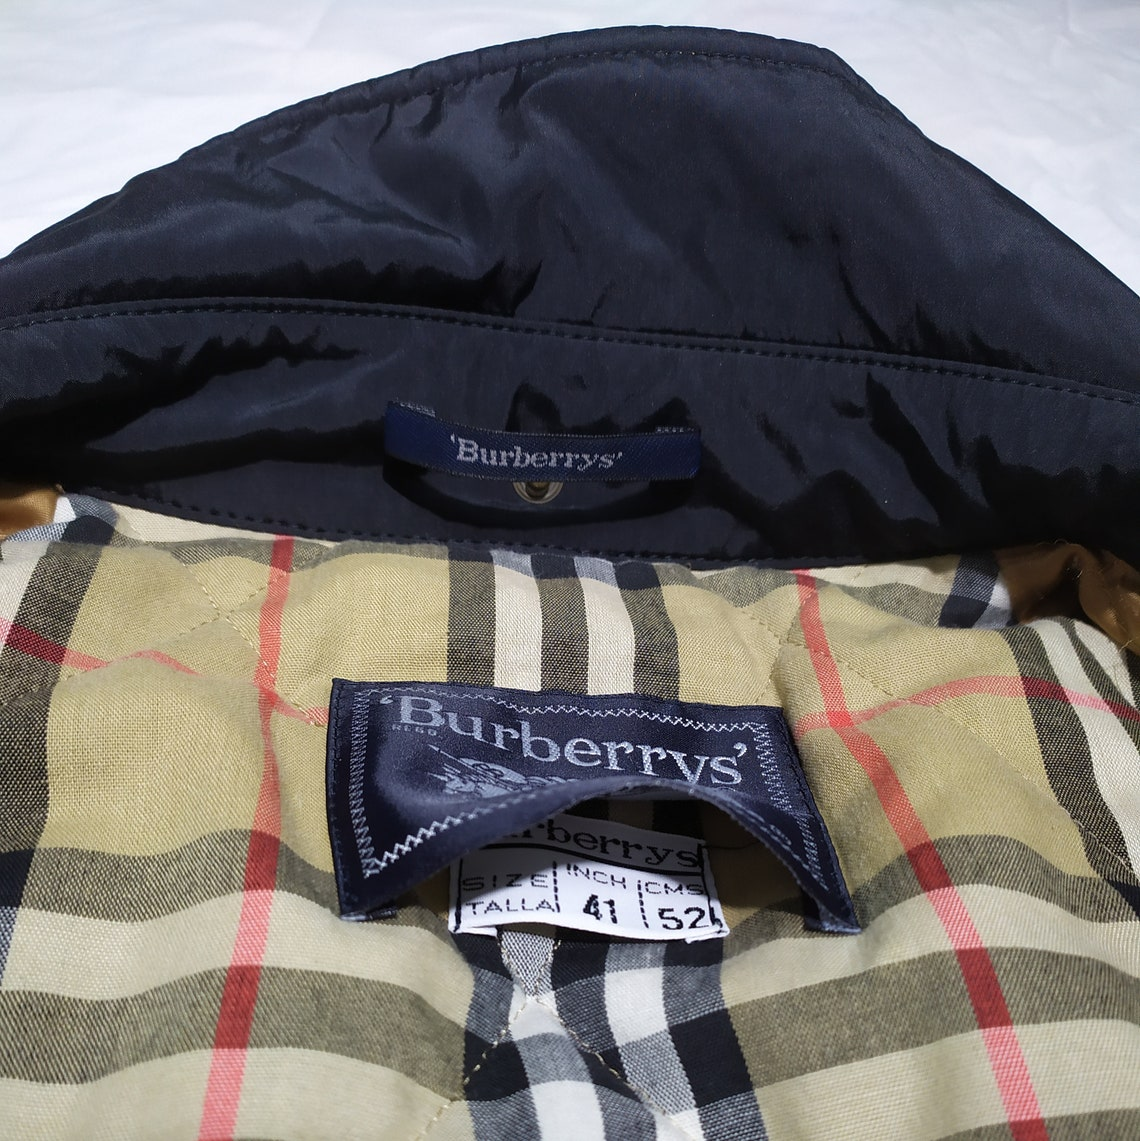 Burberry London Coat, Vintage Jacket Men's, Black Burberrys Men Size Xl - 41 Inch, Nova Check Plaid, Cotton